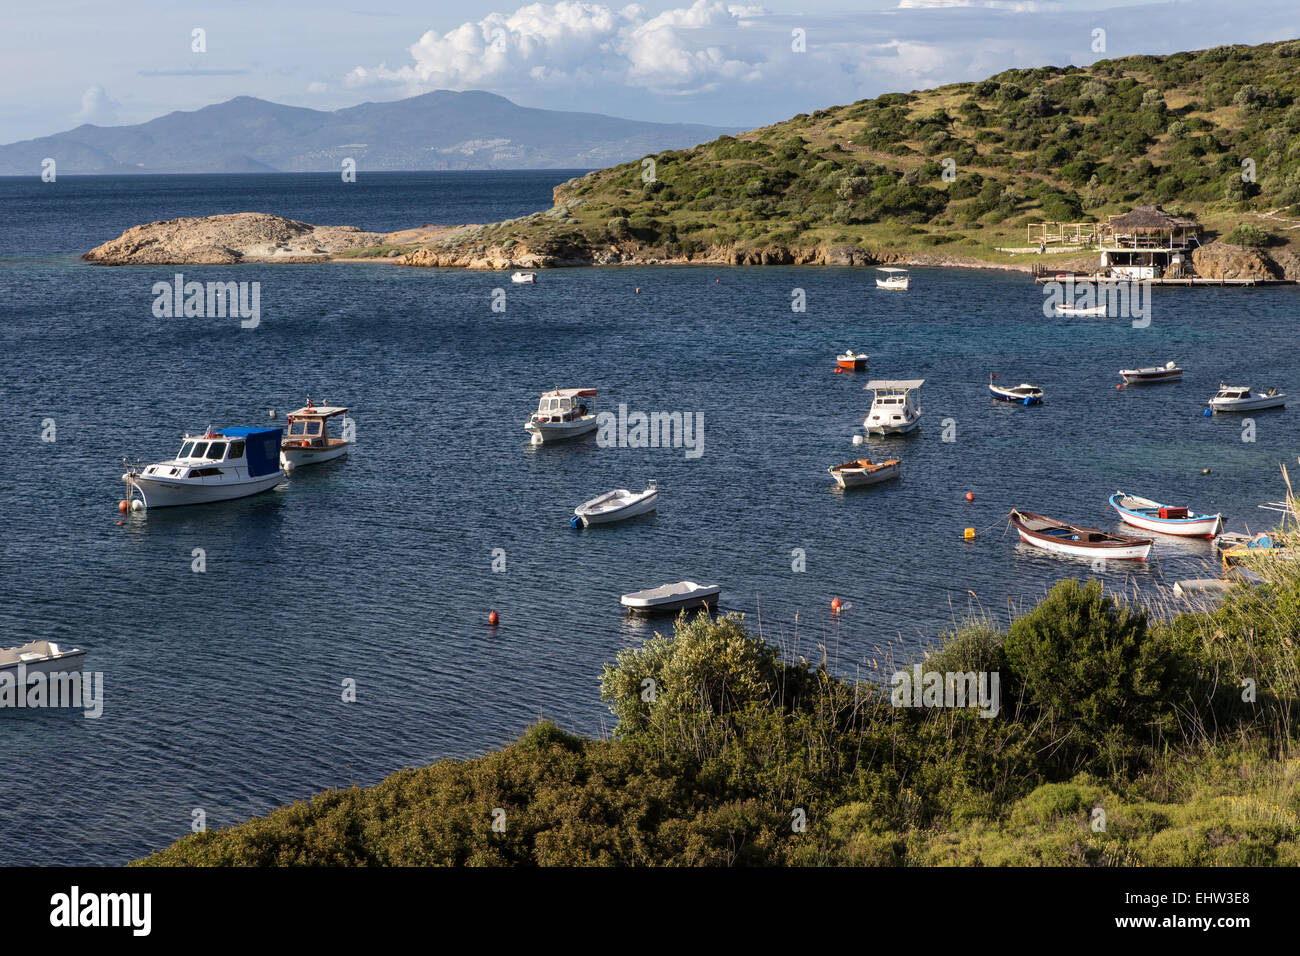 THE OLIVE RIVIERA, AEGEAN SEA, TURKEY - Stock Image